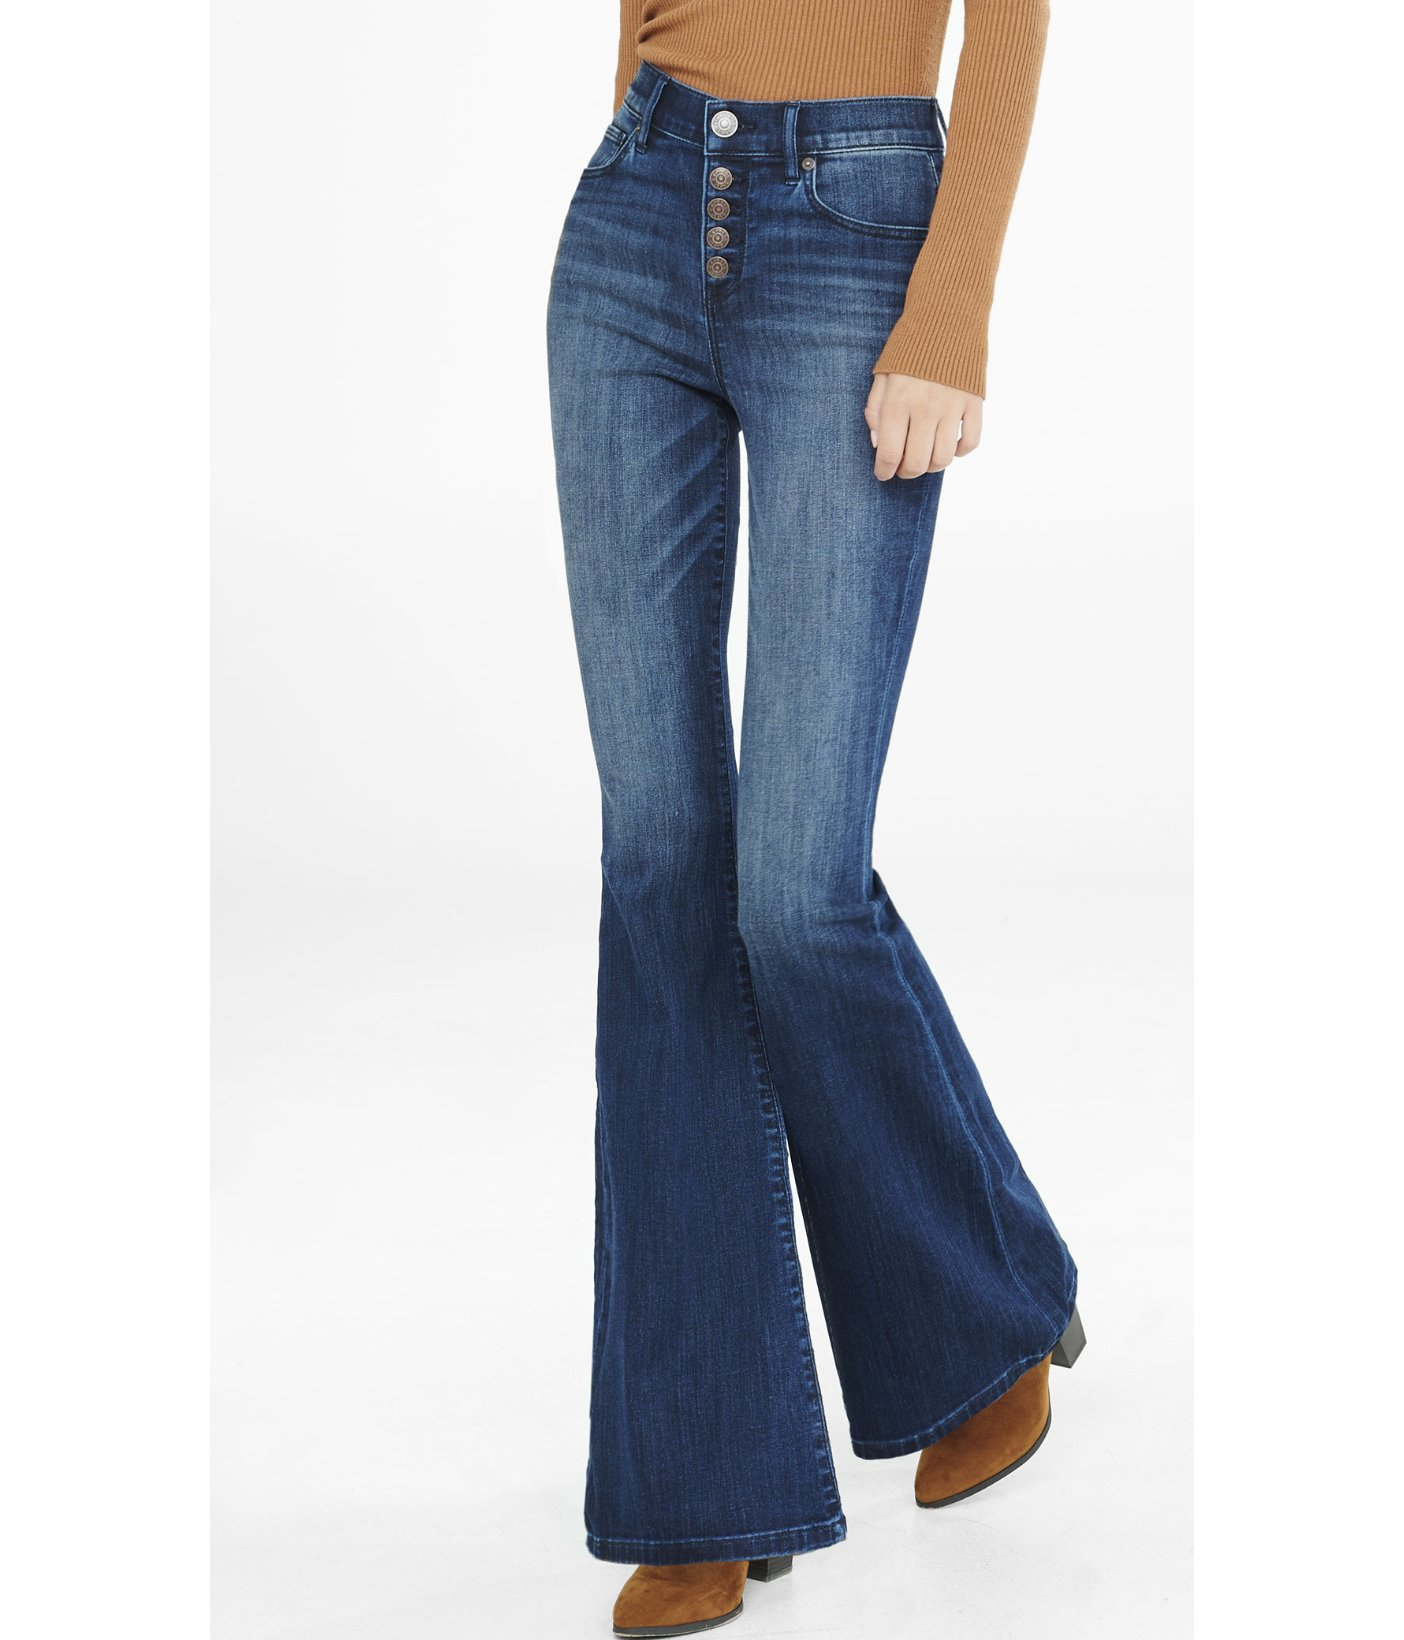 WOMEN'S NEW & VINTAGE JEANS. Hunting for new and vintage jeans? Skinny, boyfriend, straight, flare, high waisted, 90s mom and LOADS of vintage Levi's; they're all here.